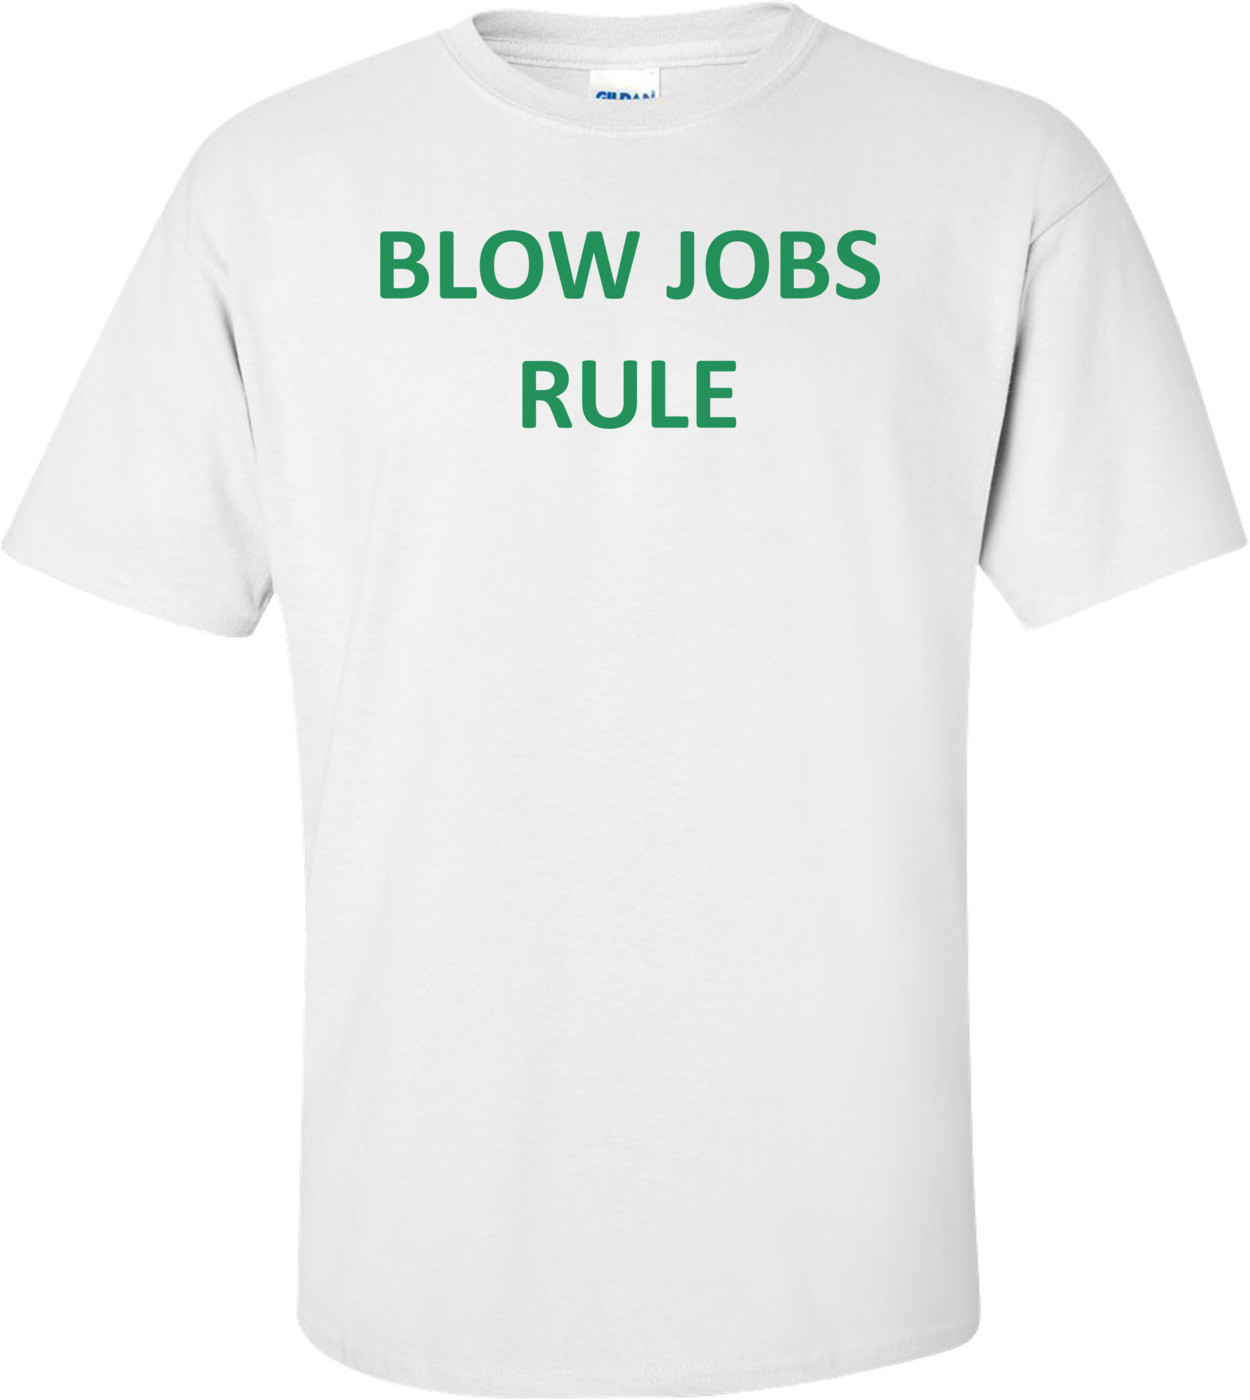 BLOW JOBS RULE Shirt